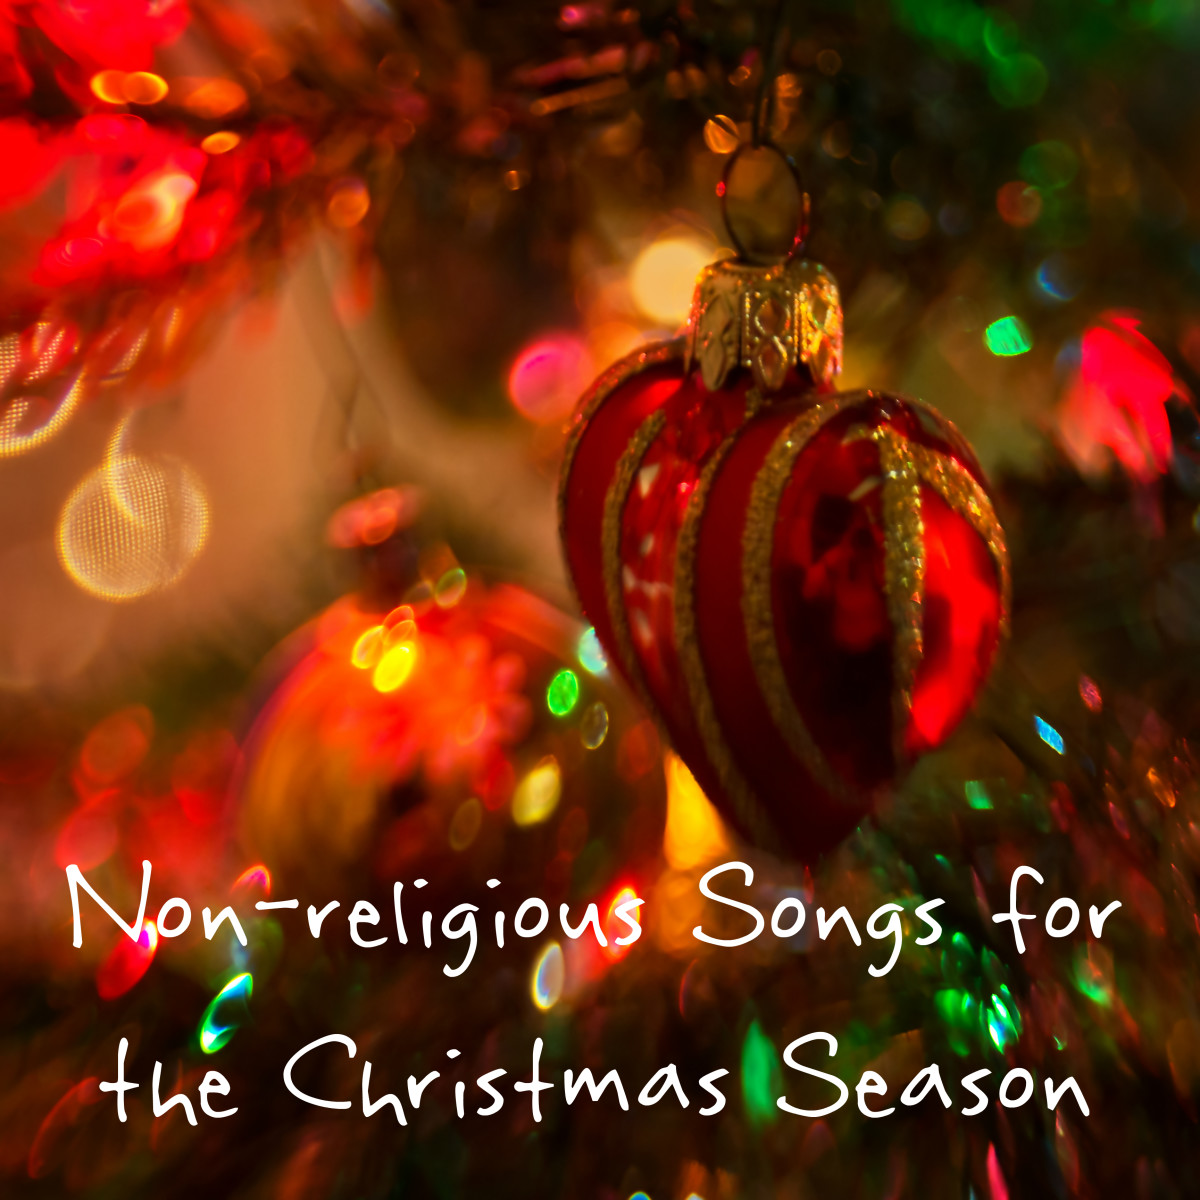 126 Non-Religious Christmas Songs for Your Holiday Playlist